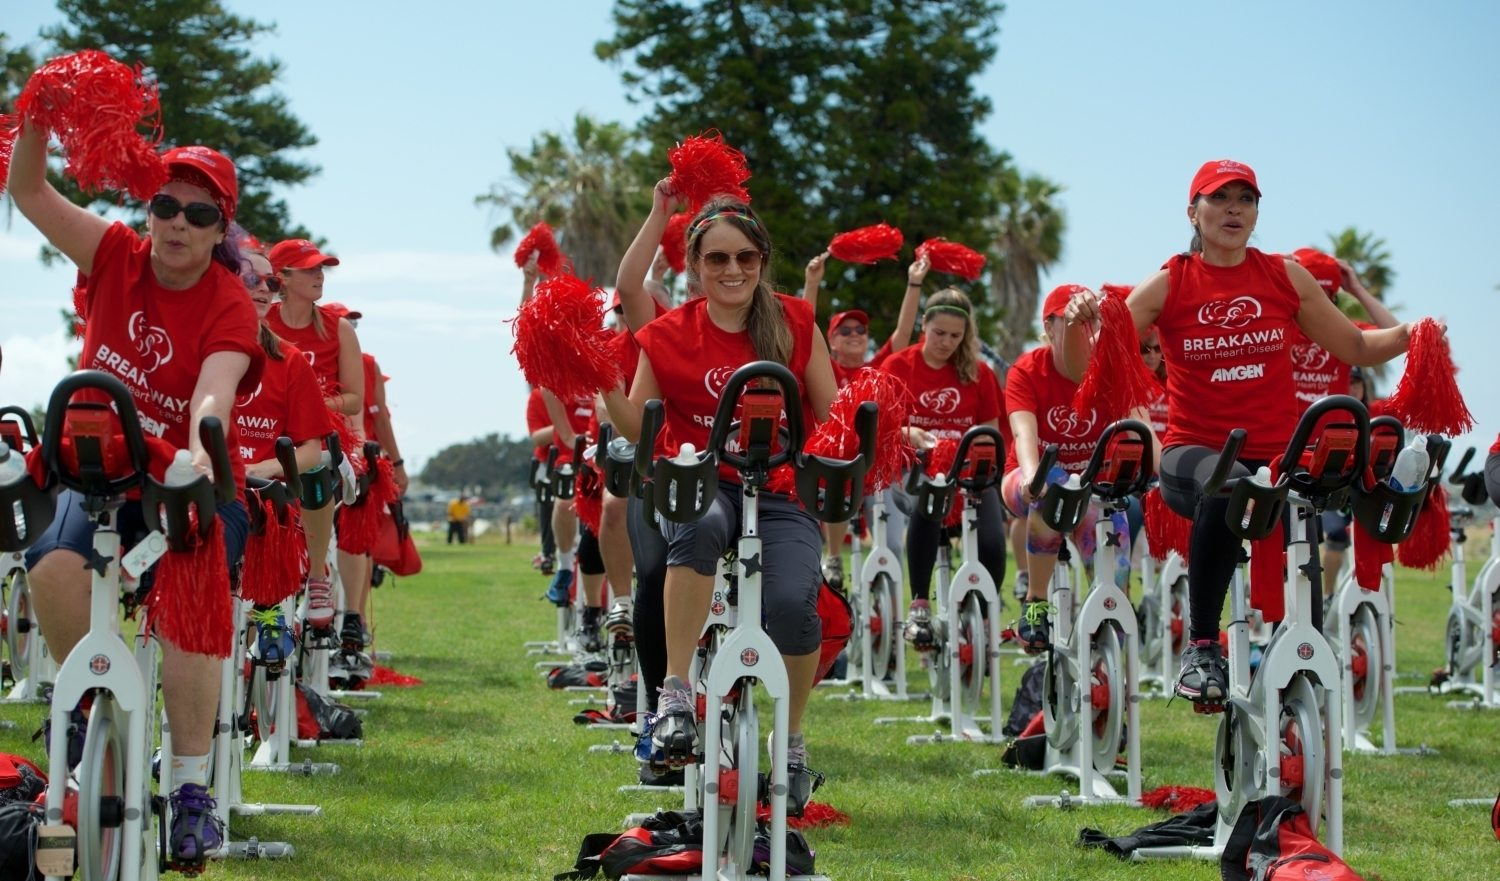 CycleNation: Use Your Pedal Power to Make a Difference